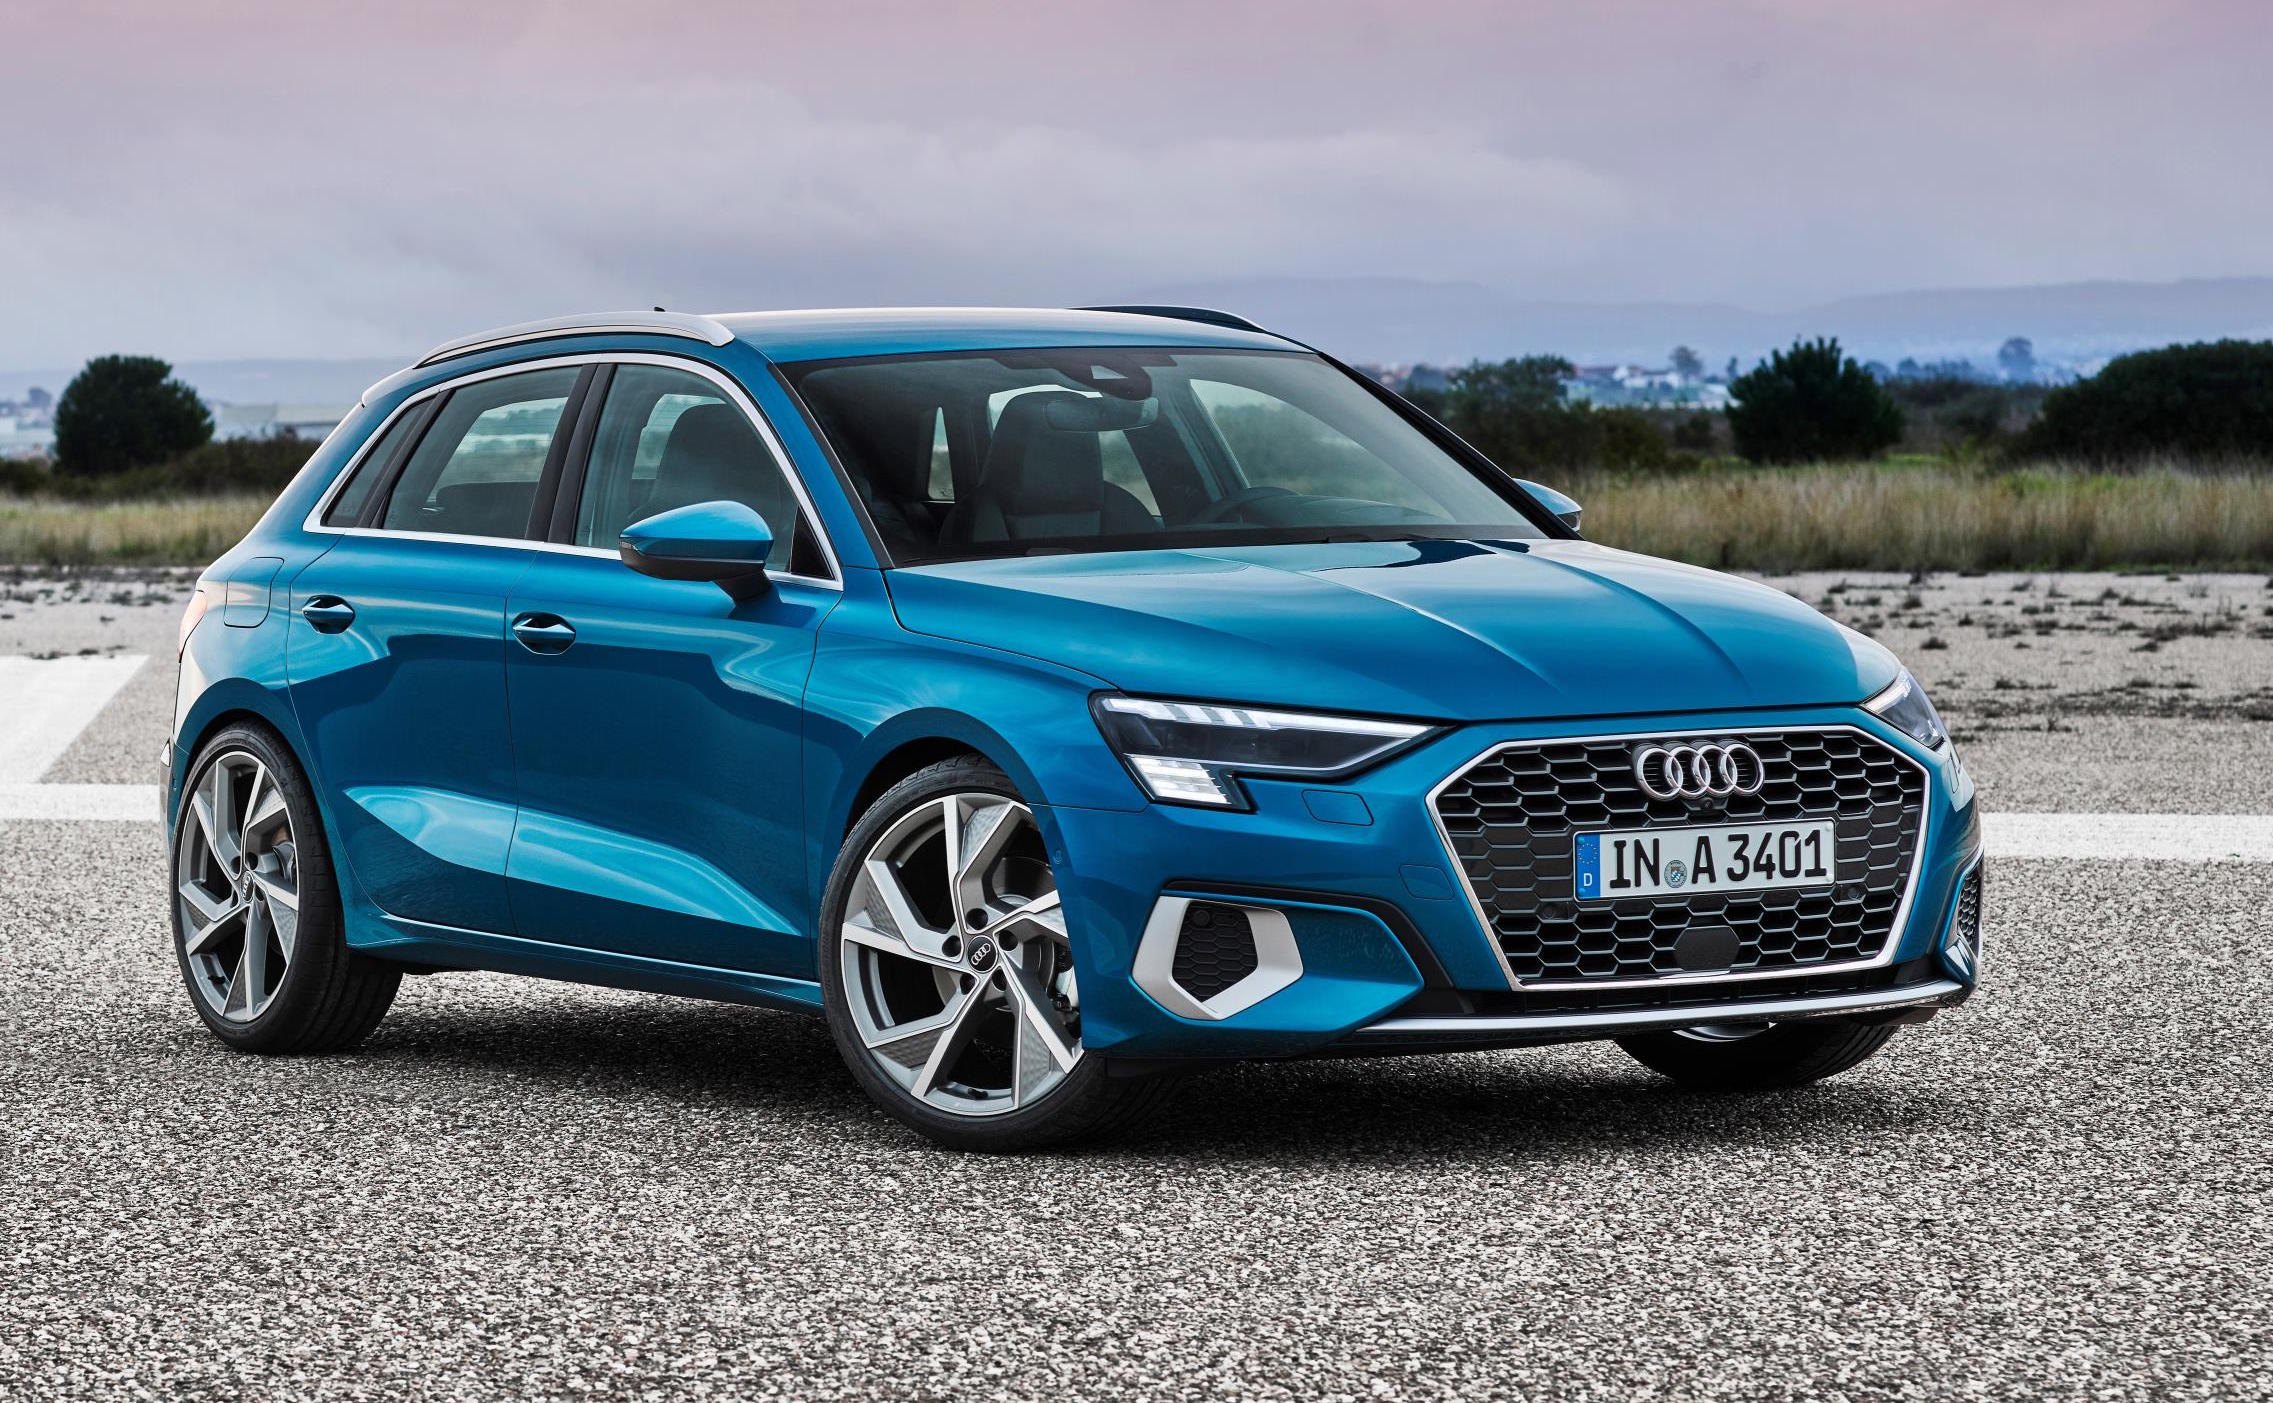 2021 Audi A3 Sportback revealed with muscular new design ...